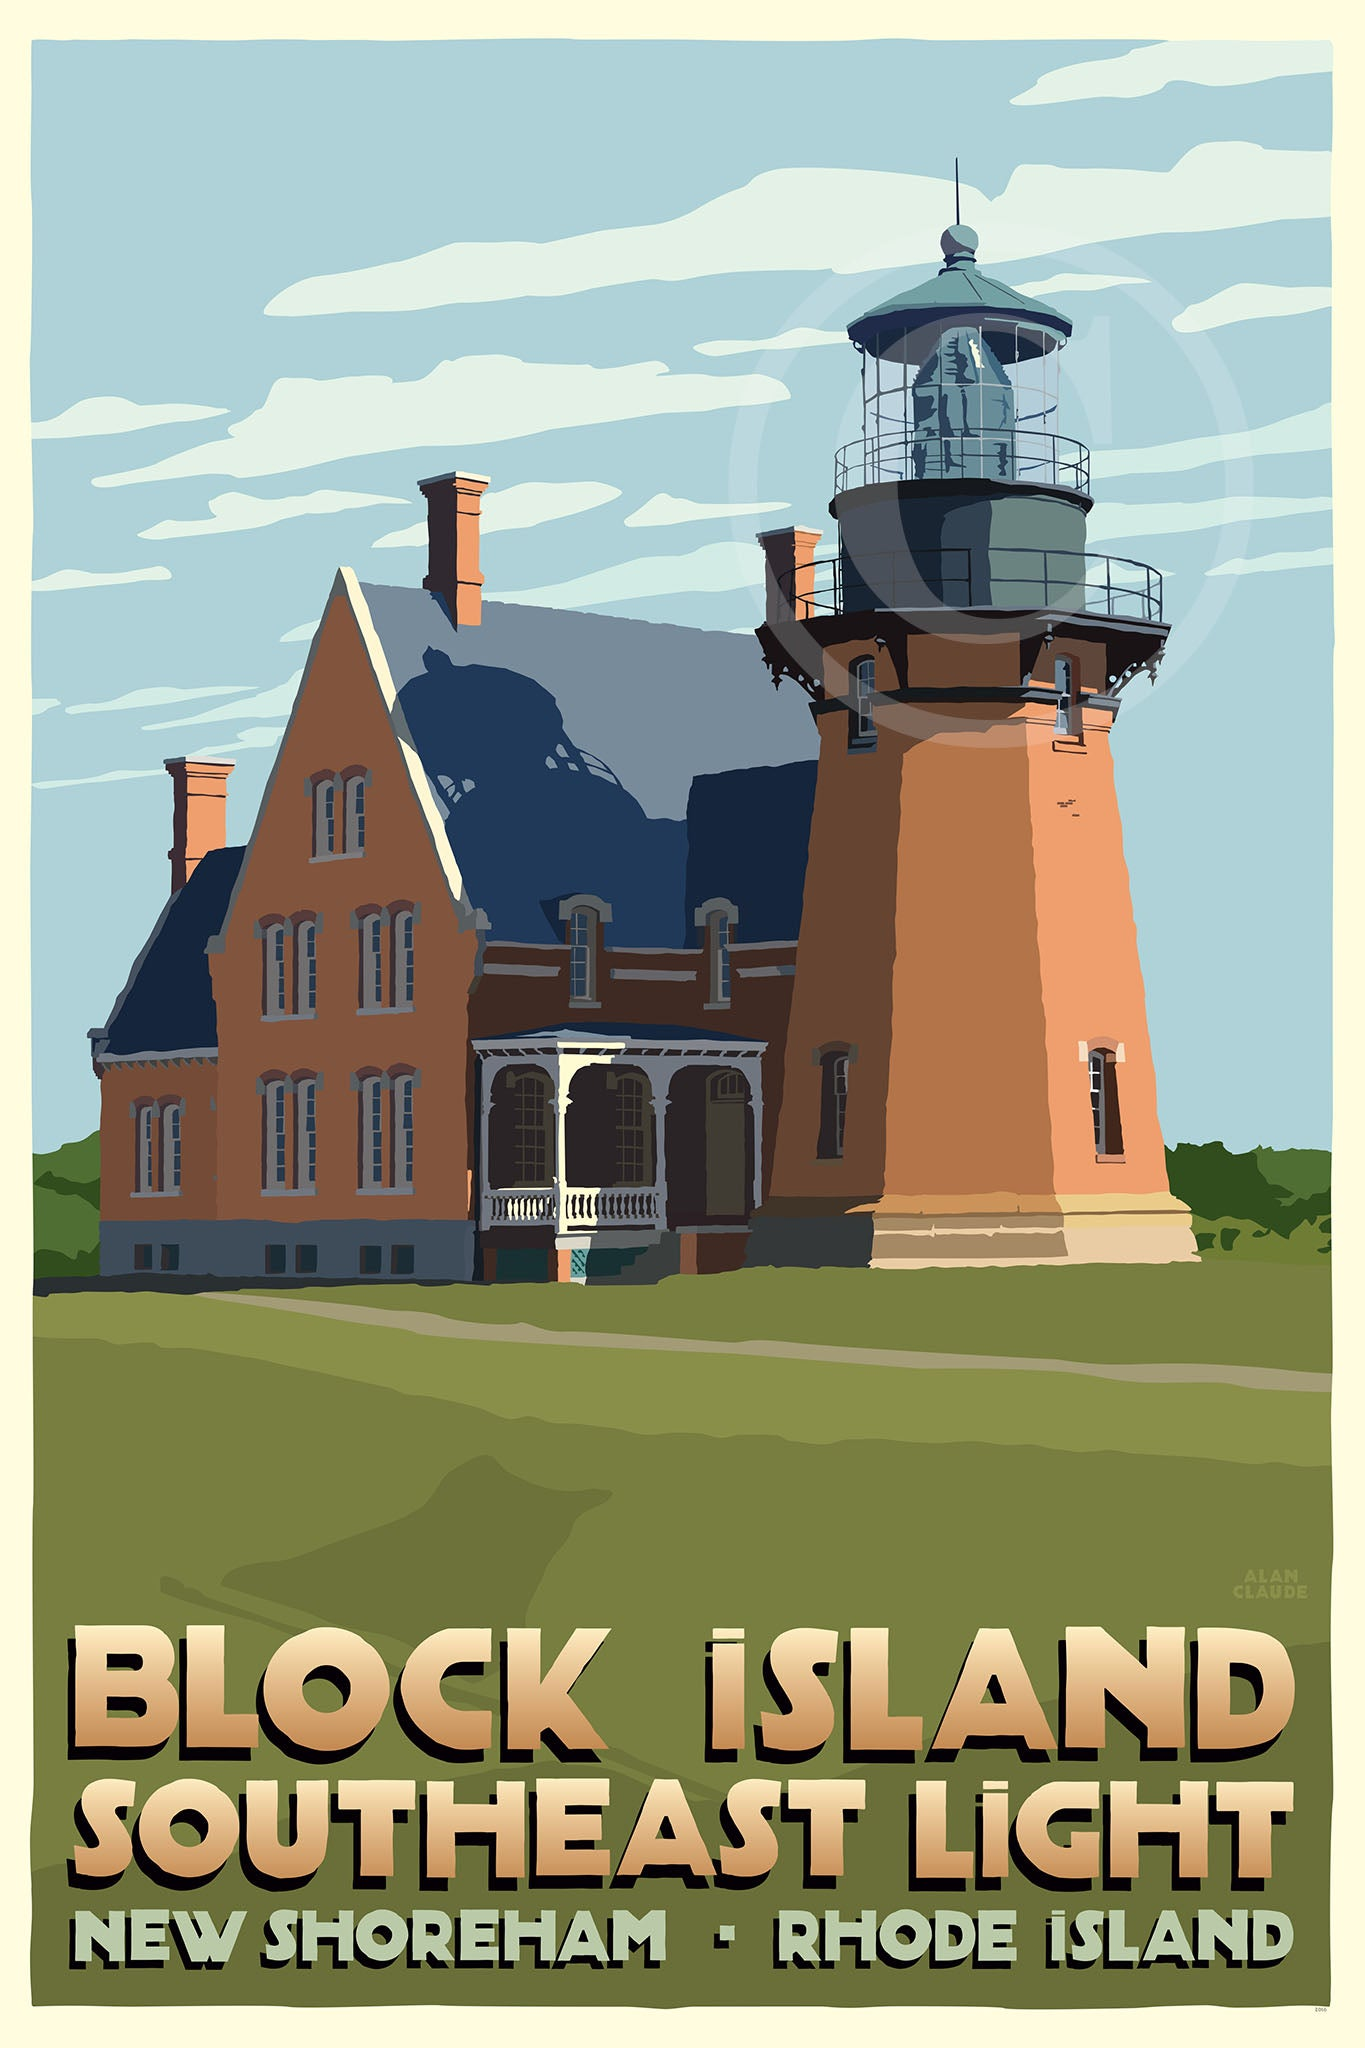 "Block Island Southeast Light Art Print 24"" x 36"" Travel Poster - Rhode Island"